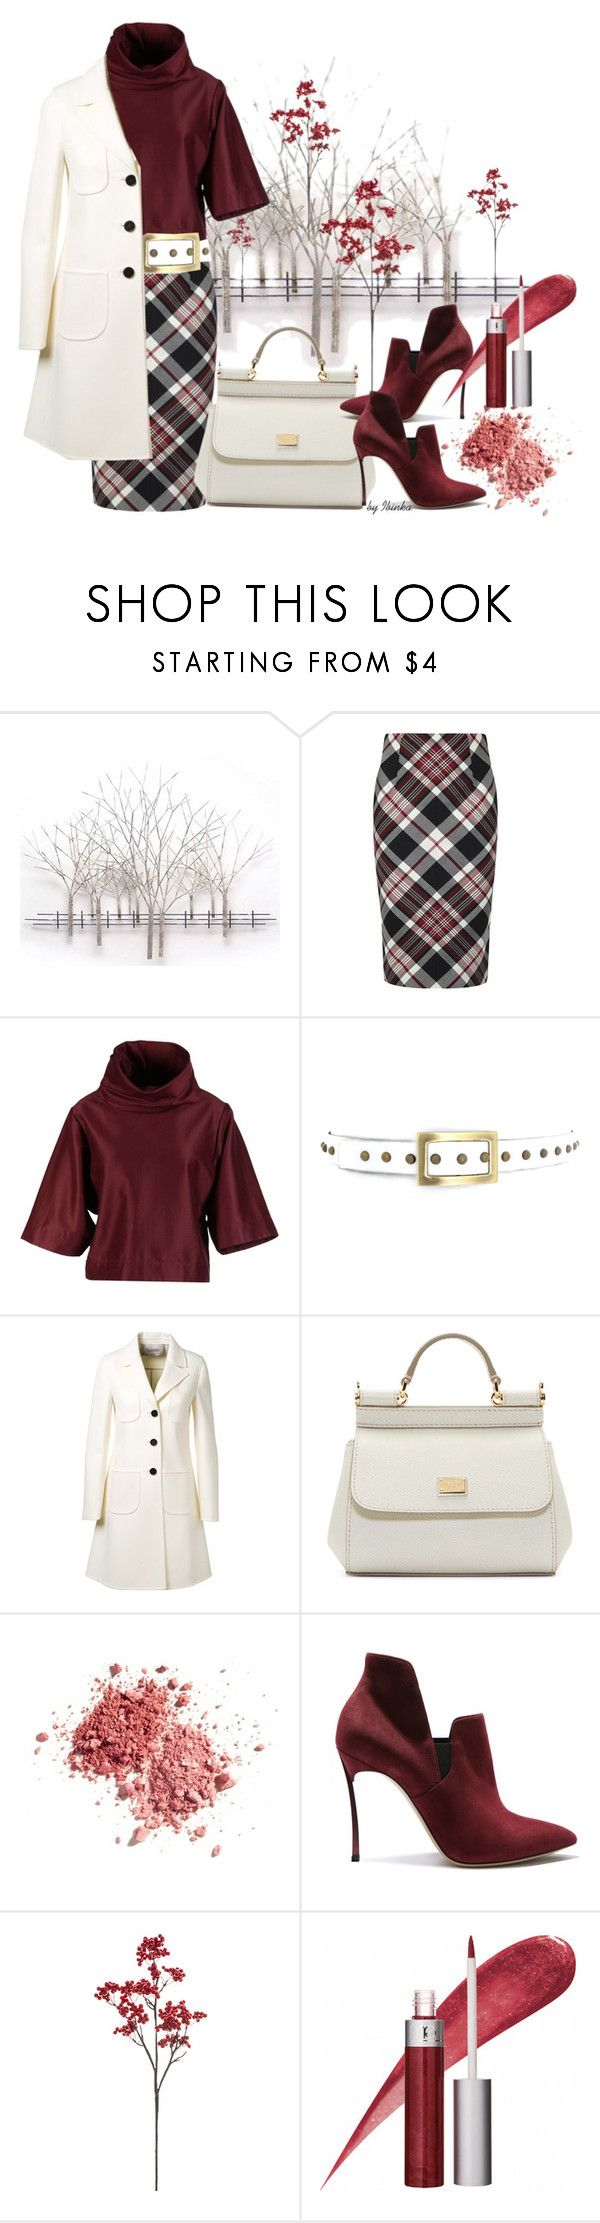 Fall Look by ibinka on Polyvore featuring STELLA McCARTNEY, Valentino, Alexander McQueen, Casadei, Dolce&Gabbana, Mineral Essence and Home Decorators Collection